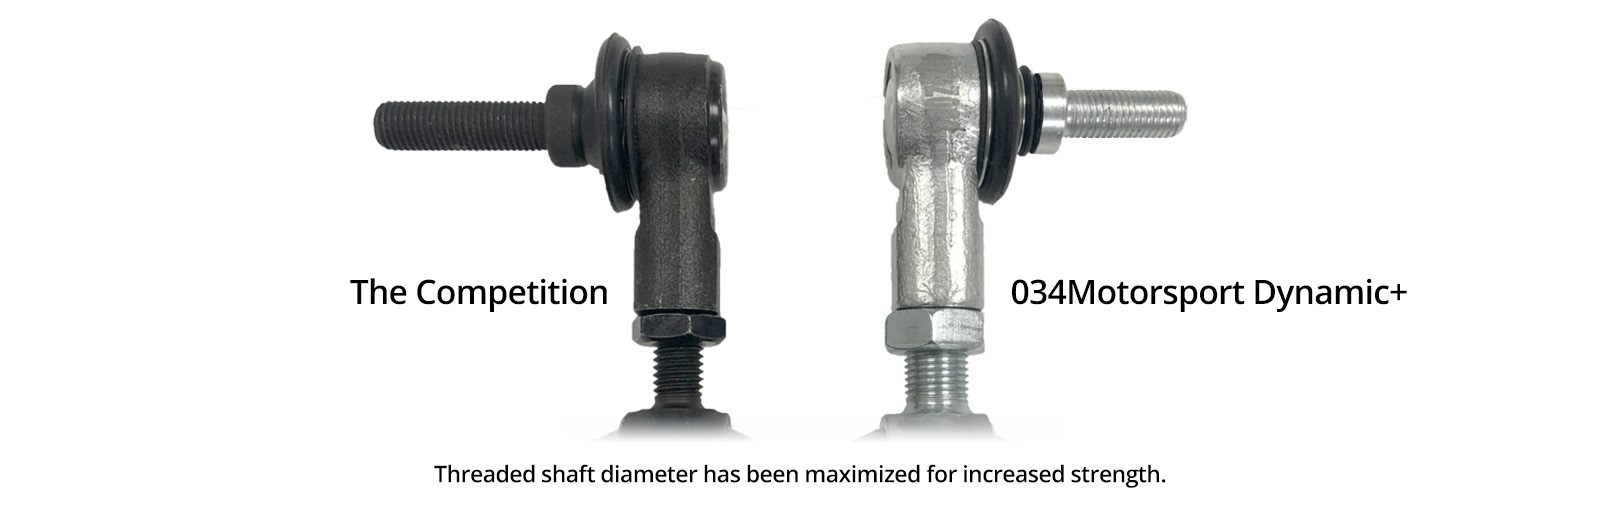 Maximized threaded shaft diameter increases overall strength of the end link.